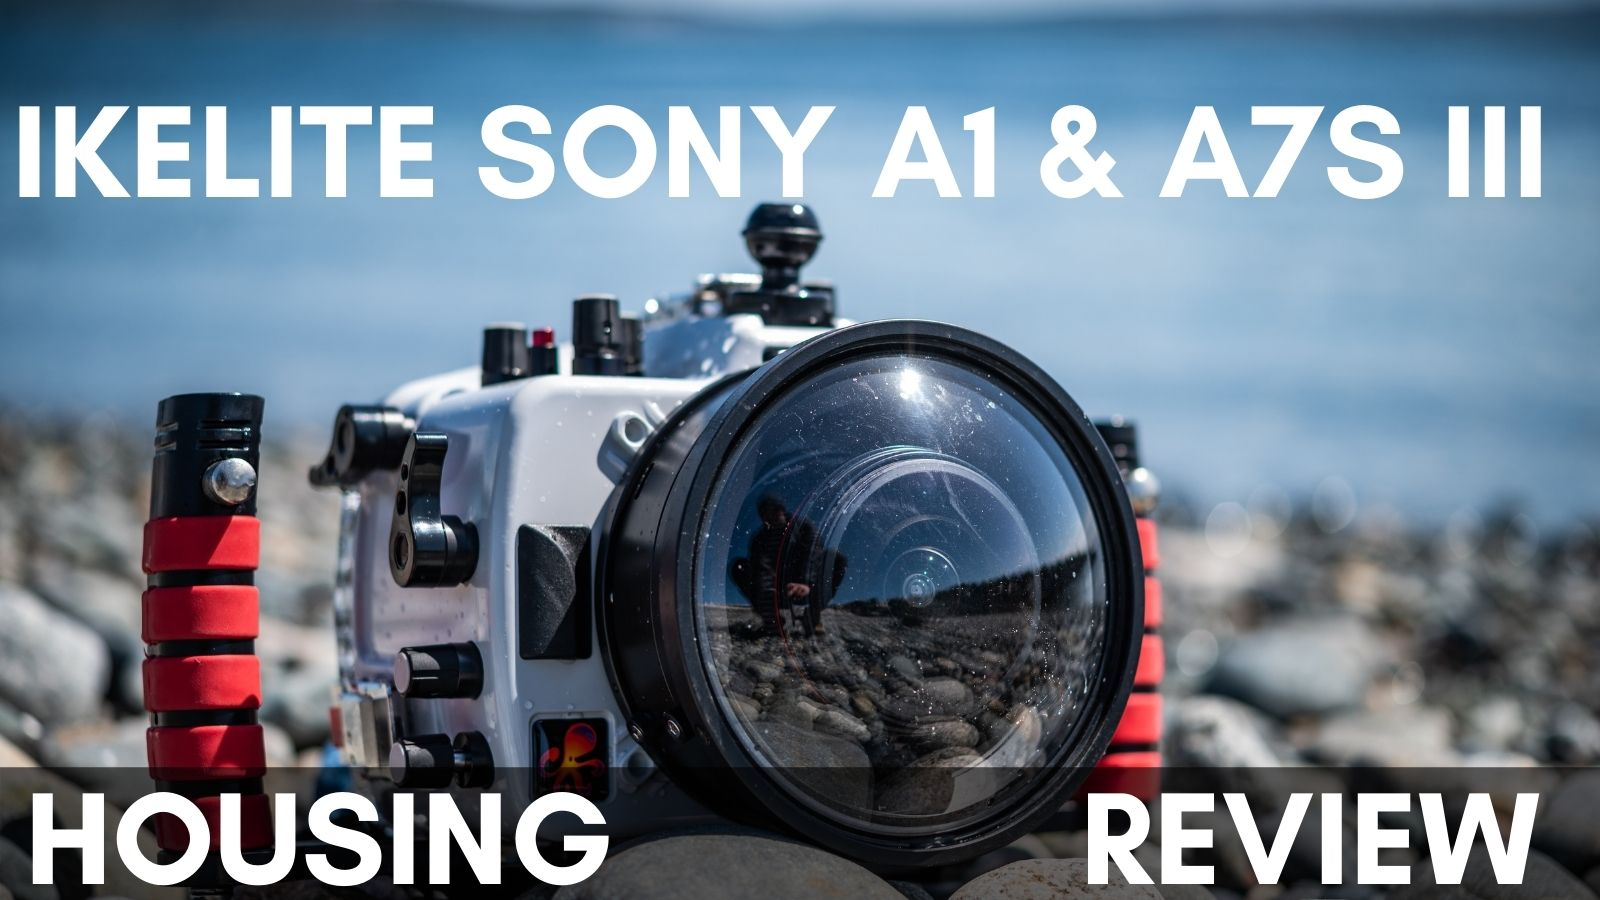 Ikelite Sony A1 & A7S III Underwater Housing Review